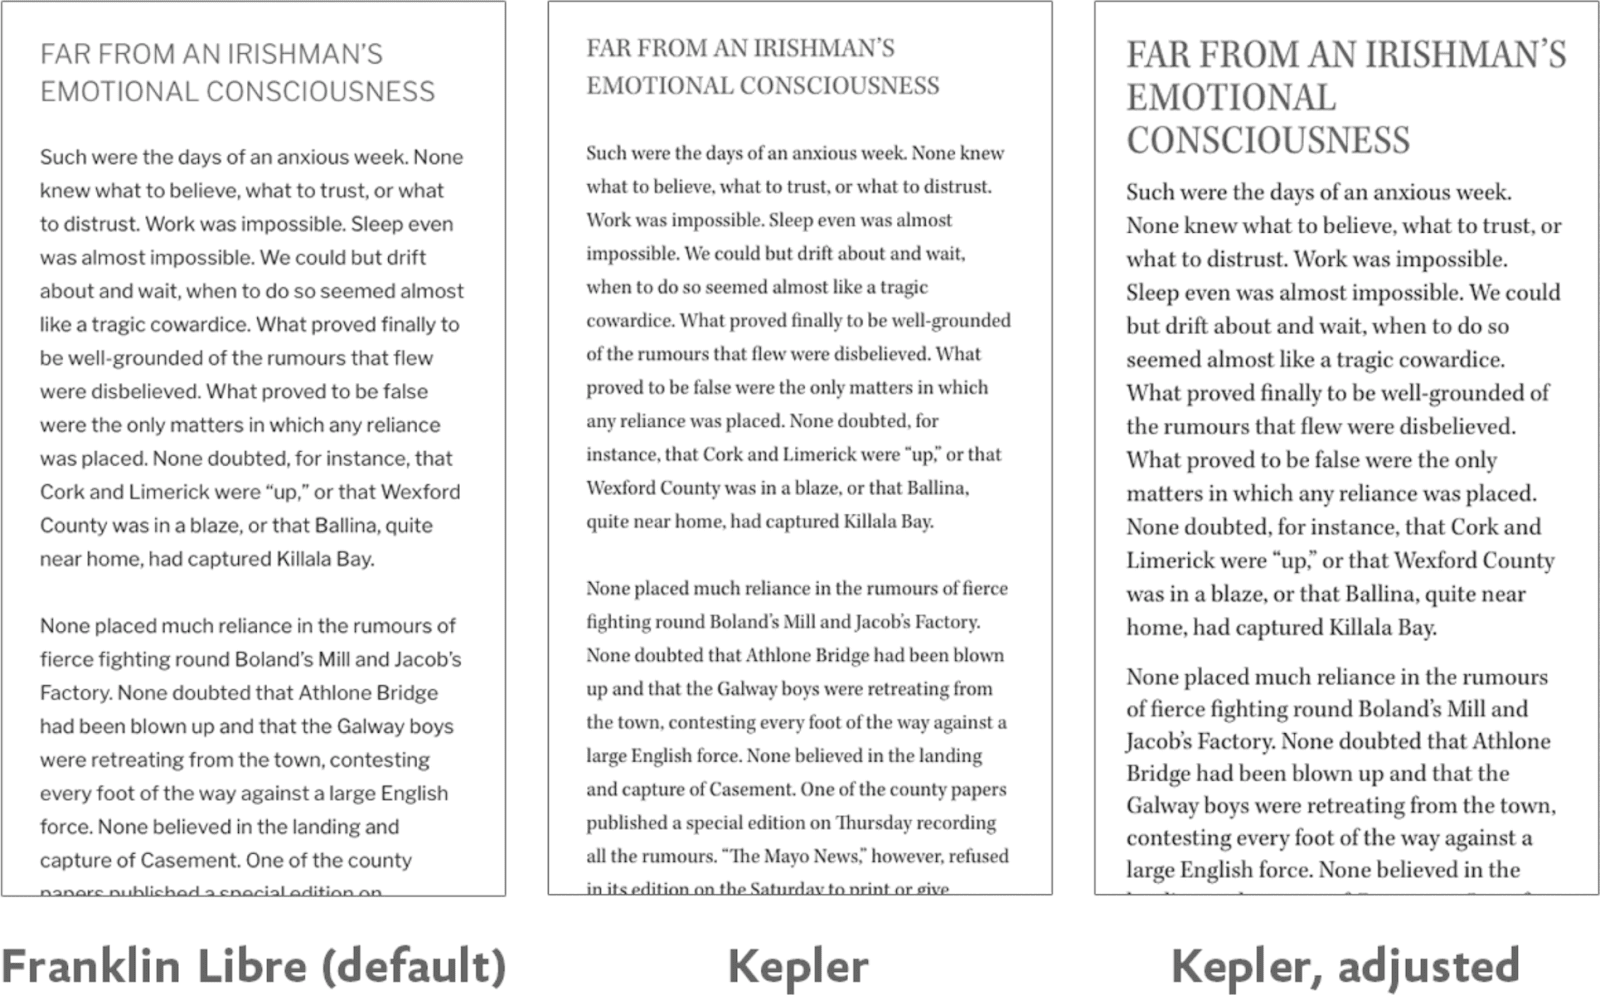 Three panels (from left): Text set in Libre Franklin, the same text re-rendered in Kepler, and (finally) adjusted in Kepler.